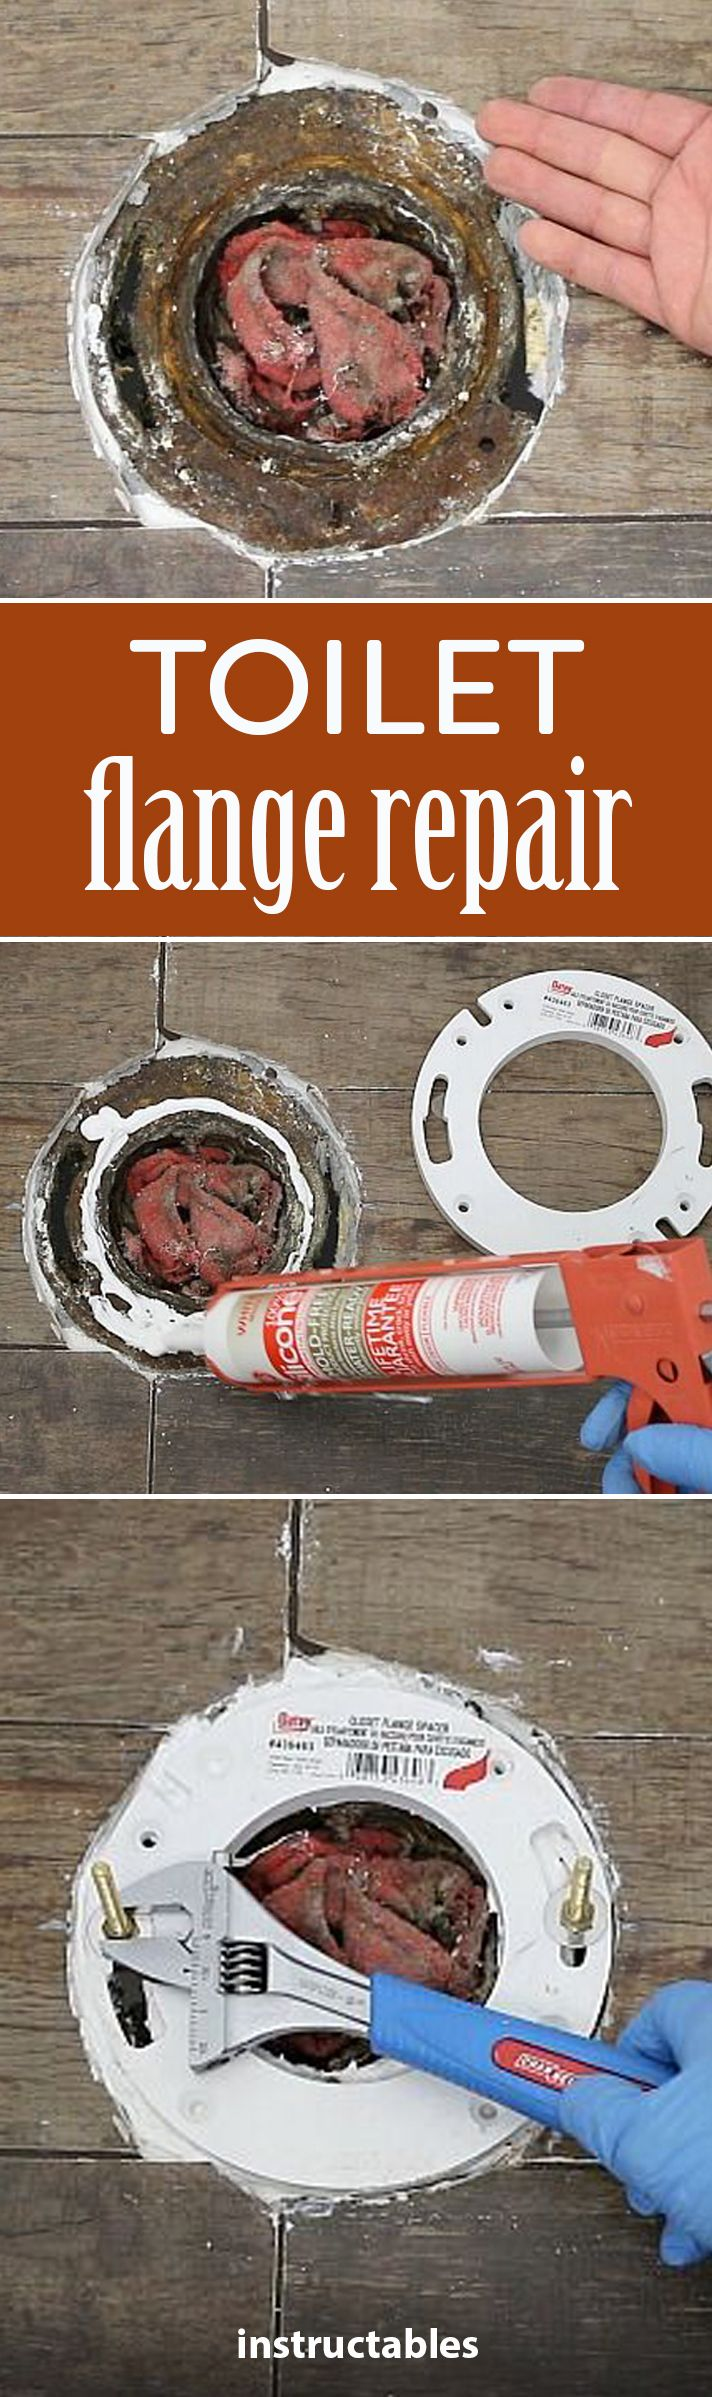 How To Repair A Toilet Flange Using A Toilet Flange Extender   Great Step By